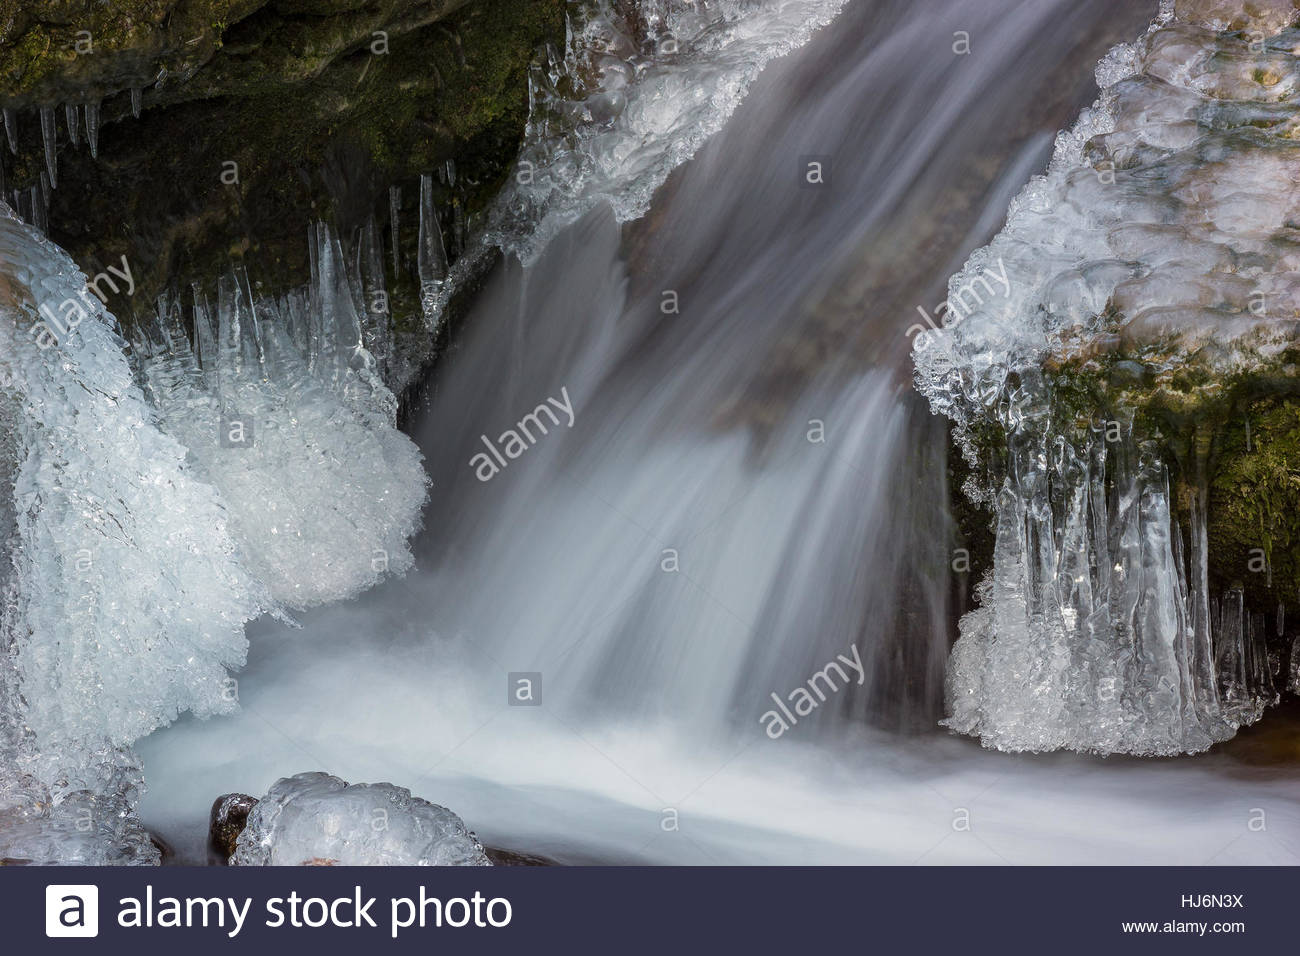 cold winter : ice frozen river banks and beautiful icicles - Stock Image